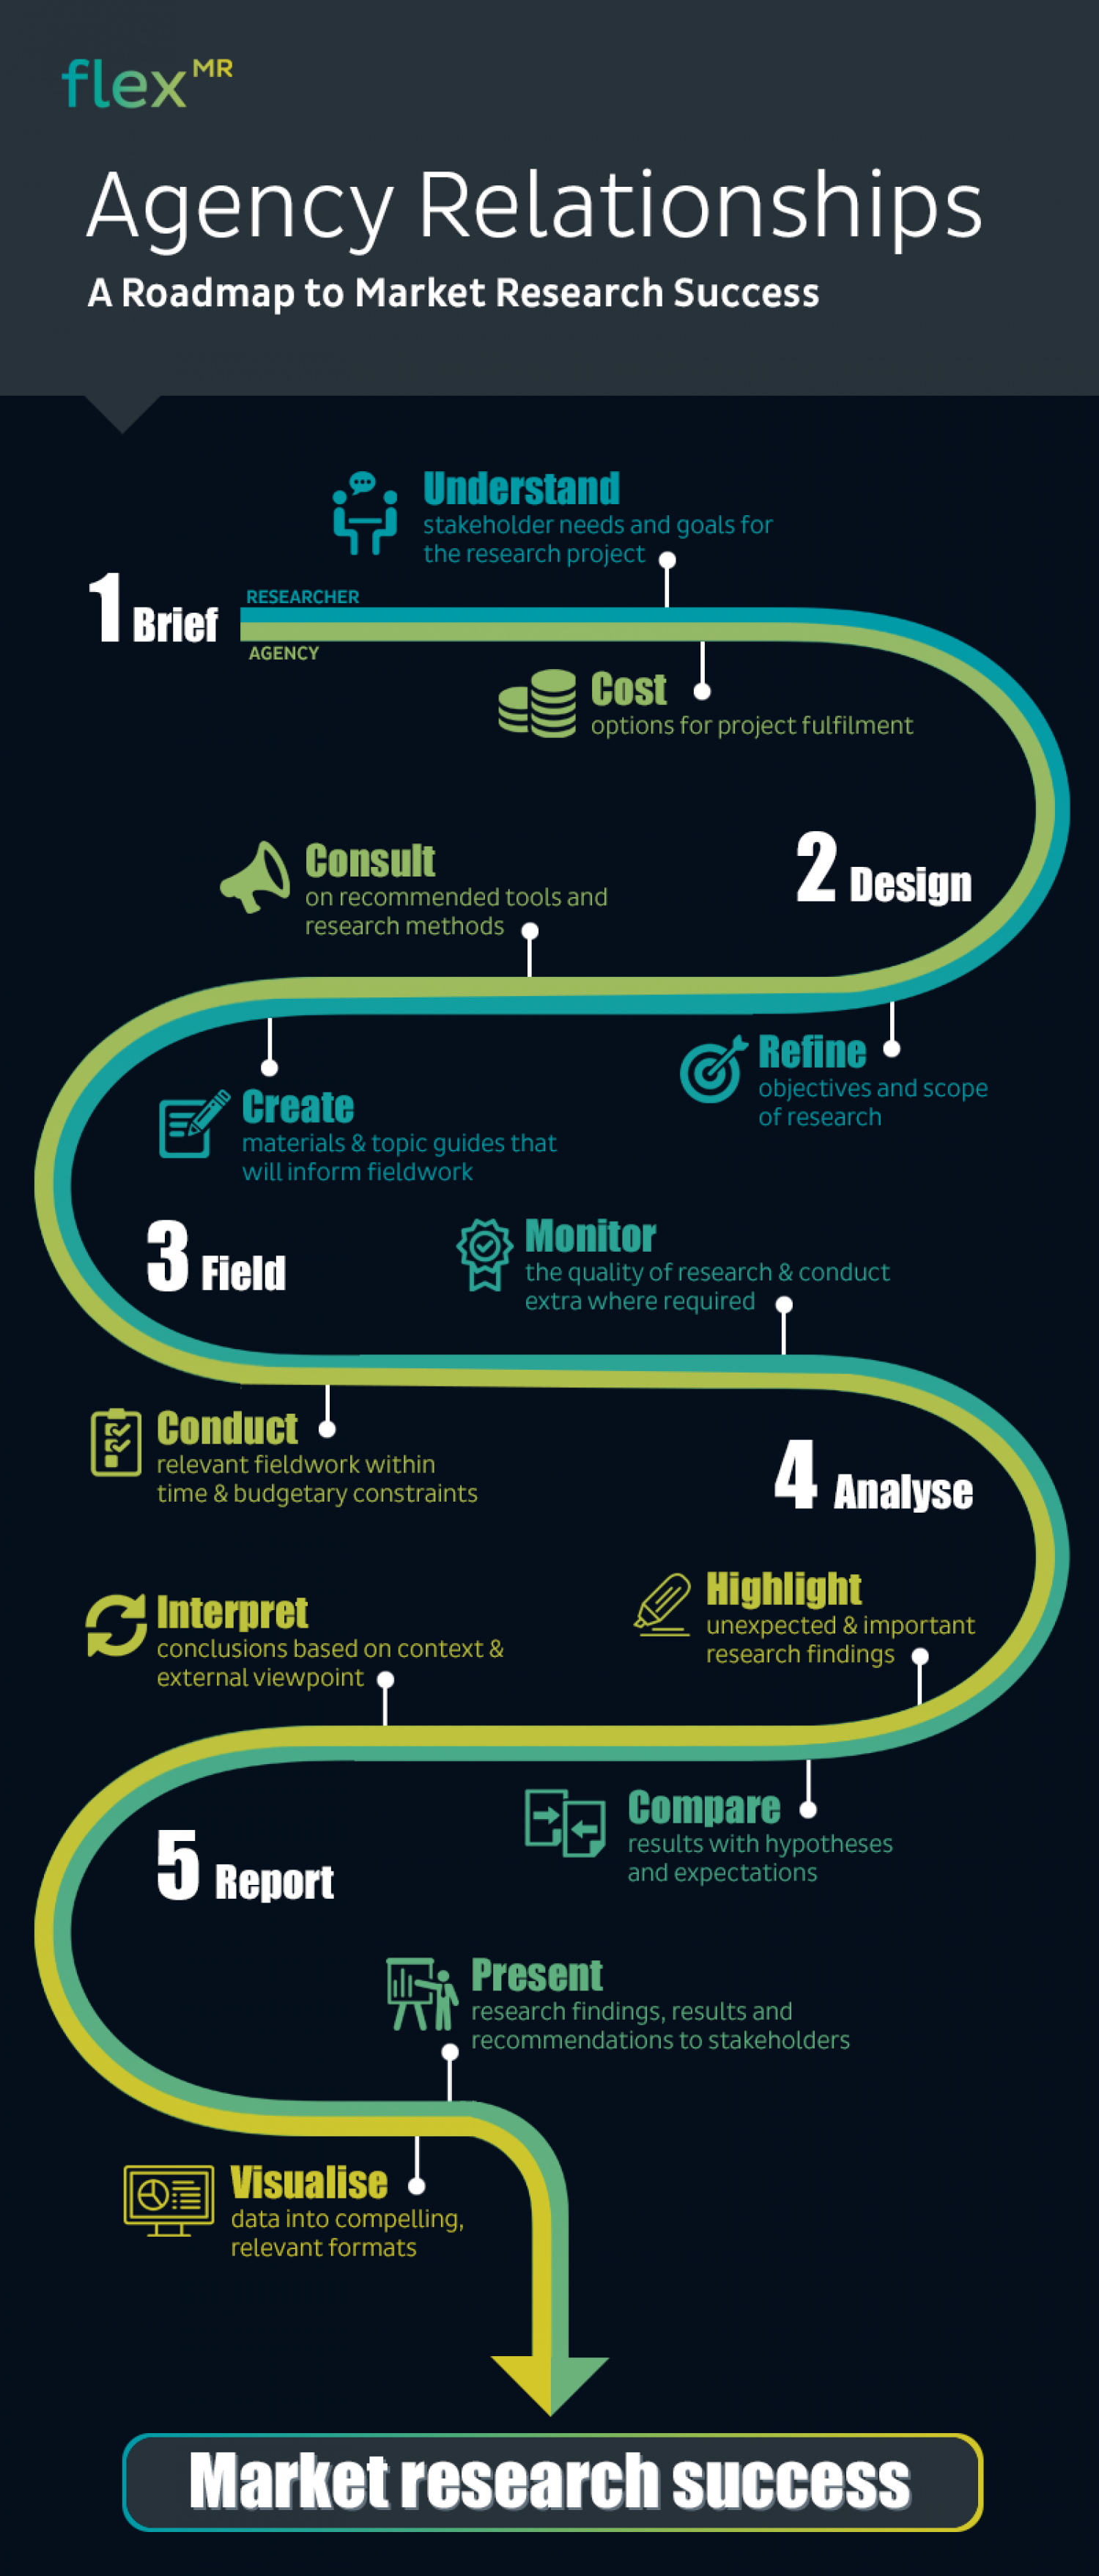 Rethinking Agency Relationships: A Roadmap to Research Success Infographic